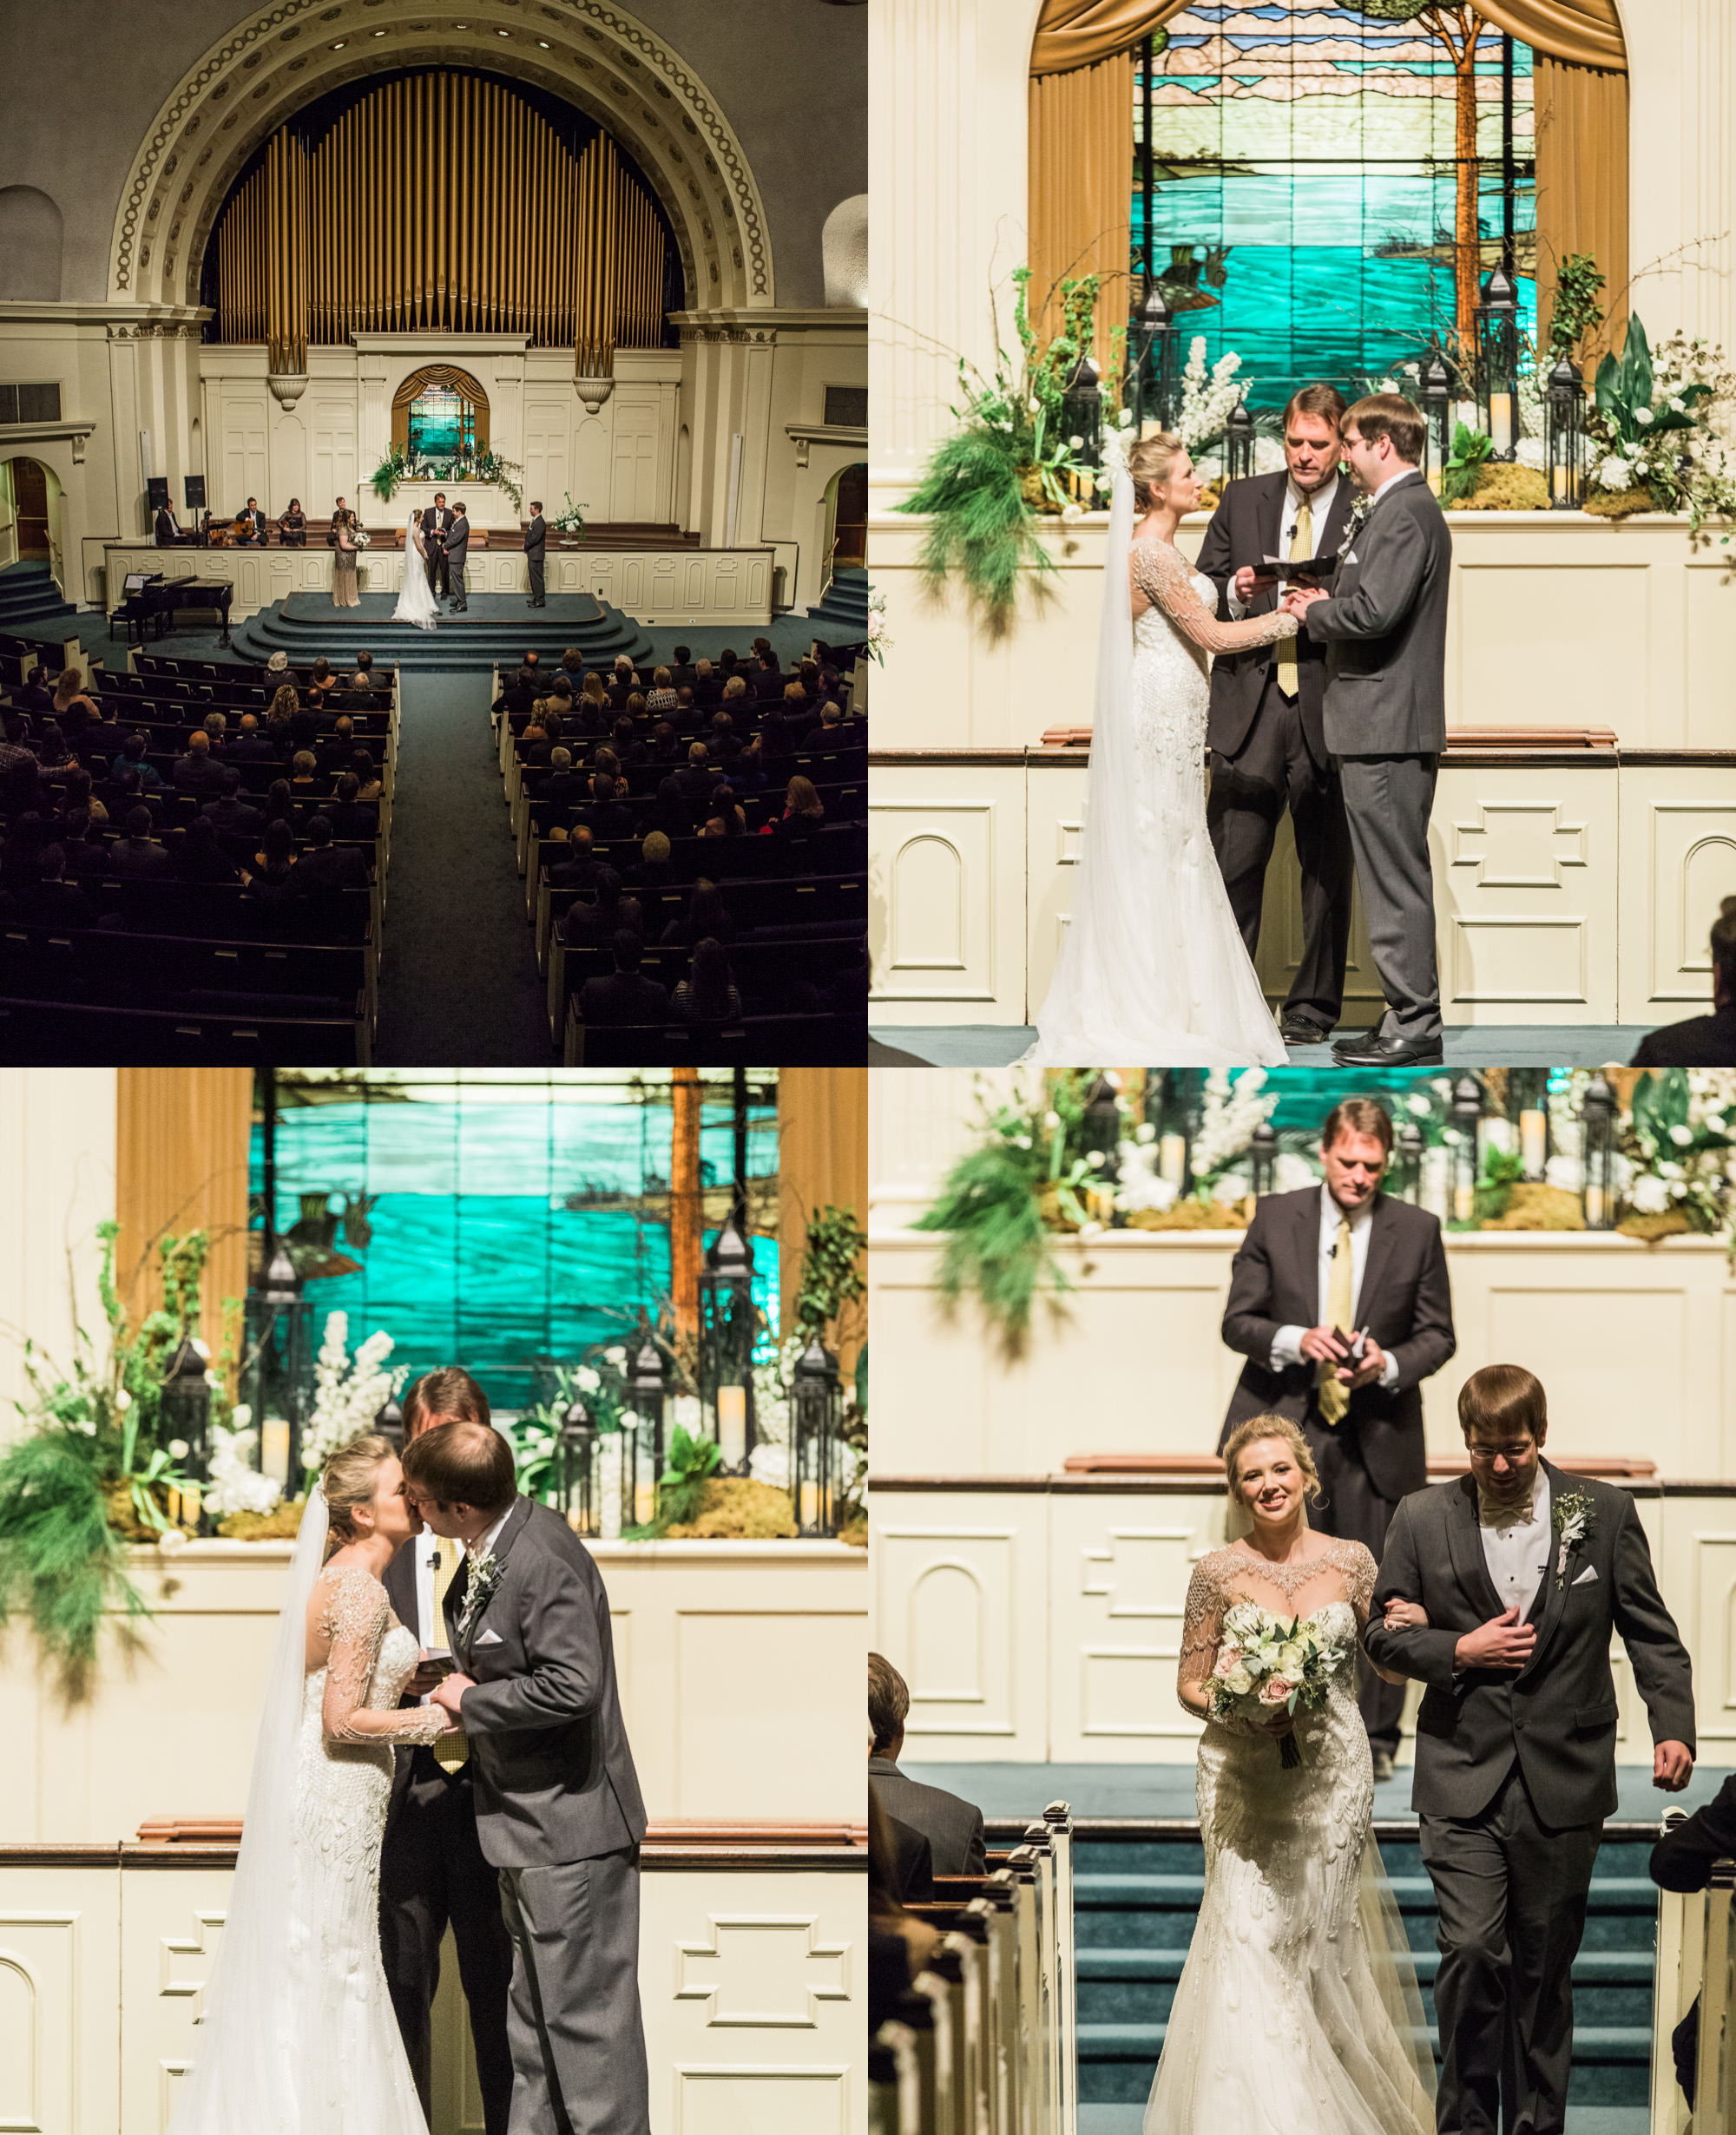 OAKLEY_WEDDING_MONTGOMERY_ALABAMA_WEDDING_PHOTOGRAPHY_57